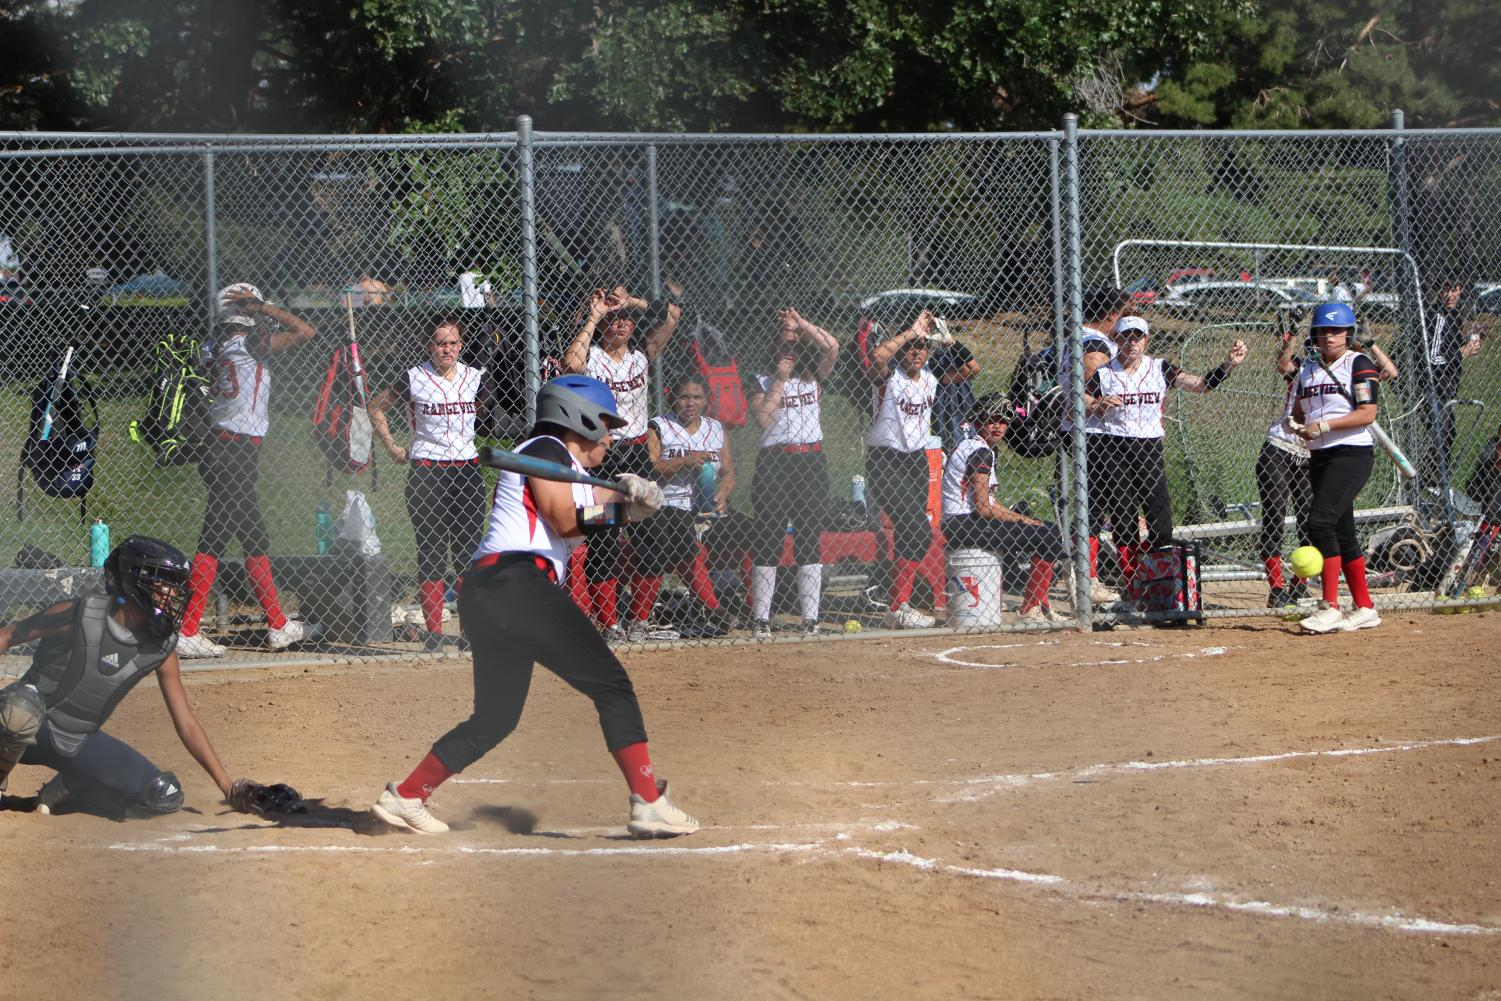 Senior Janeigh De La Paz steps up and swings in the first game of the season vs. Kennedy. Rangeview won with an ending score of 12-8.